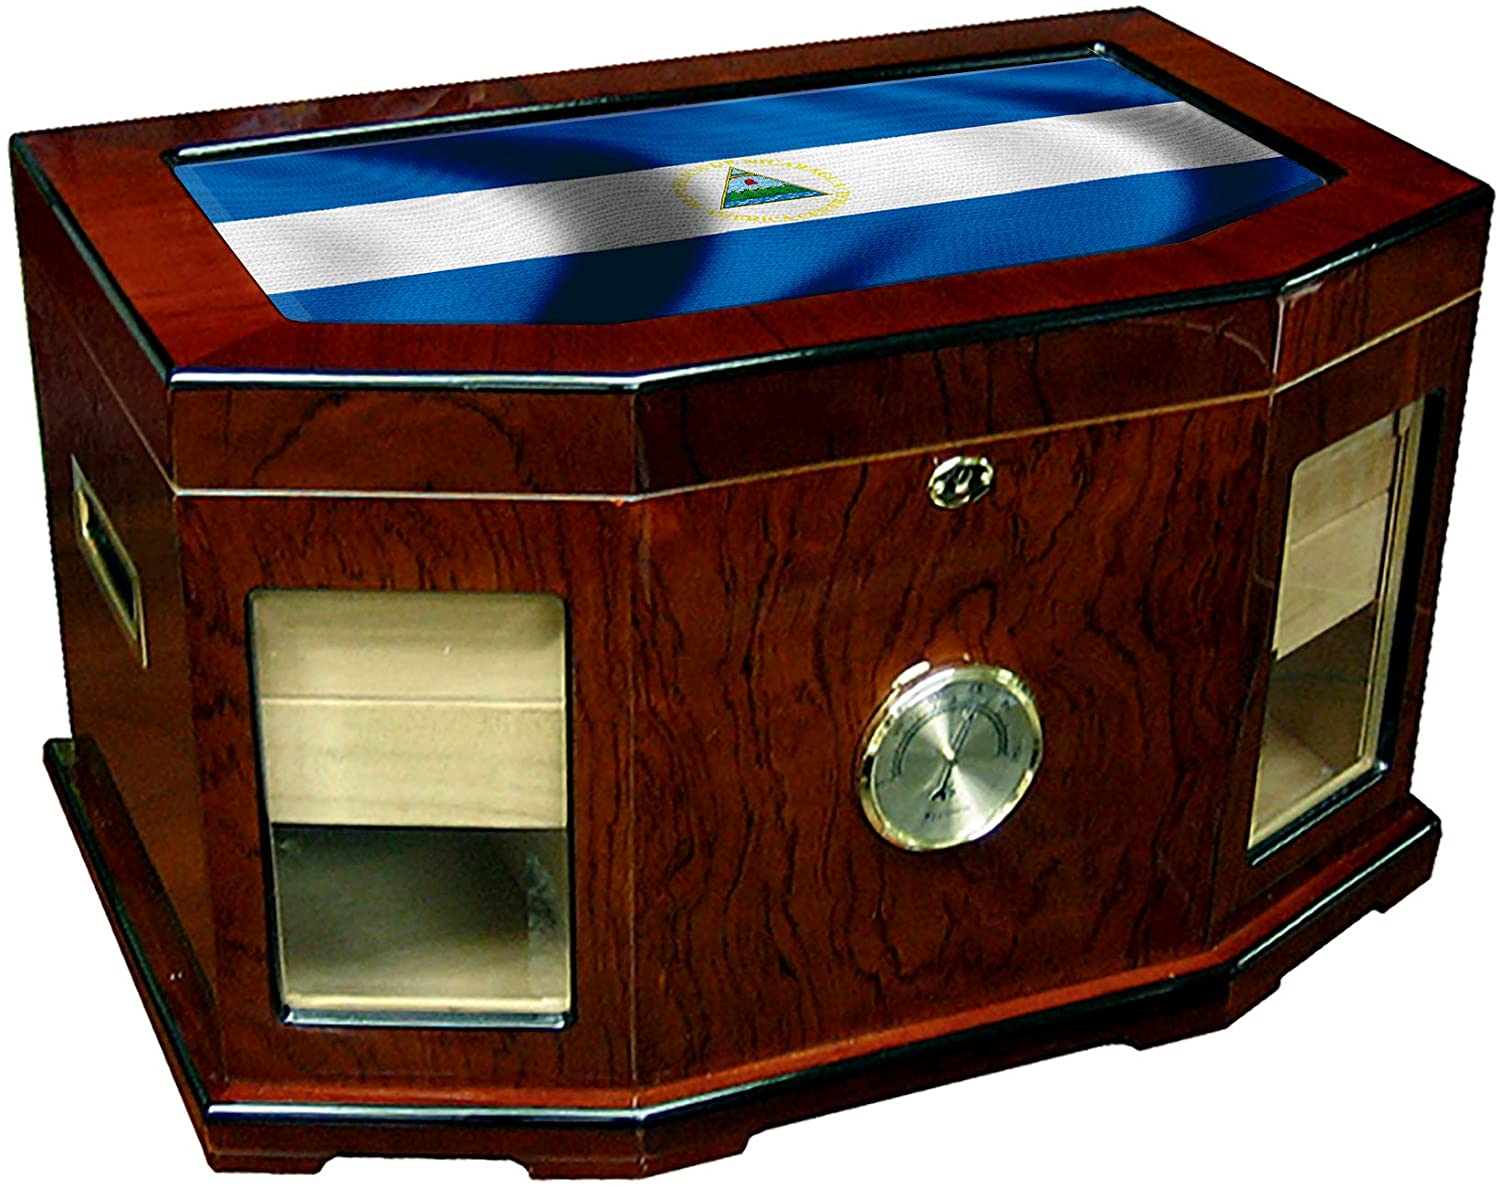 Large Premium Desktop Humidor - Glass Top - Flag of Nicaragua (Nicaraguan) - Waves Design - 300 Cigar Capacity - Cedar Lined with Two humidifiers & Large Front Mounted Hygrometer.